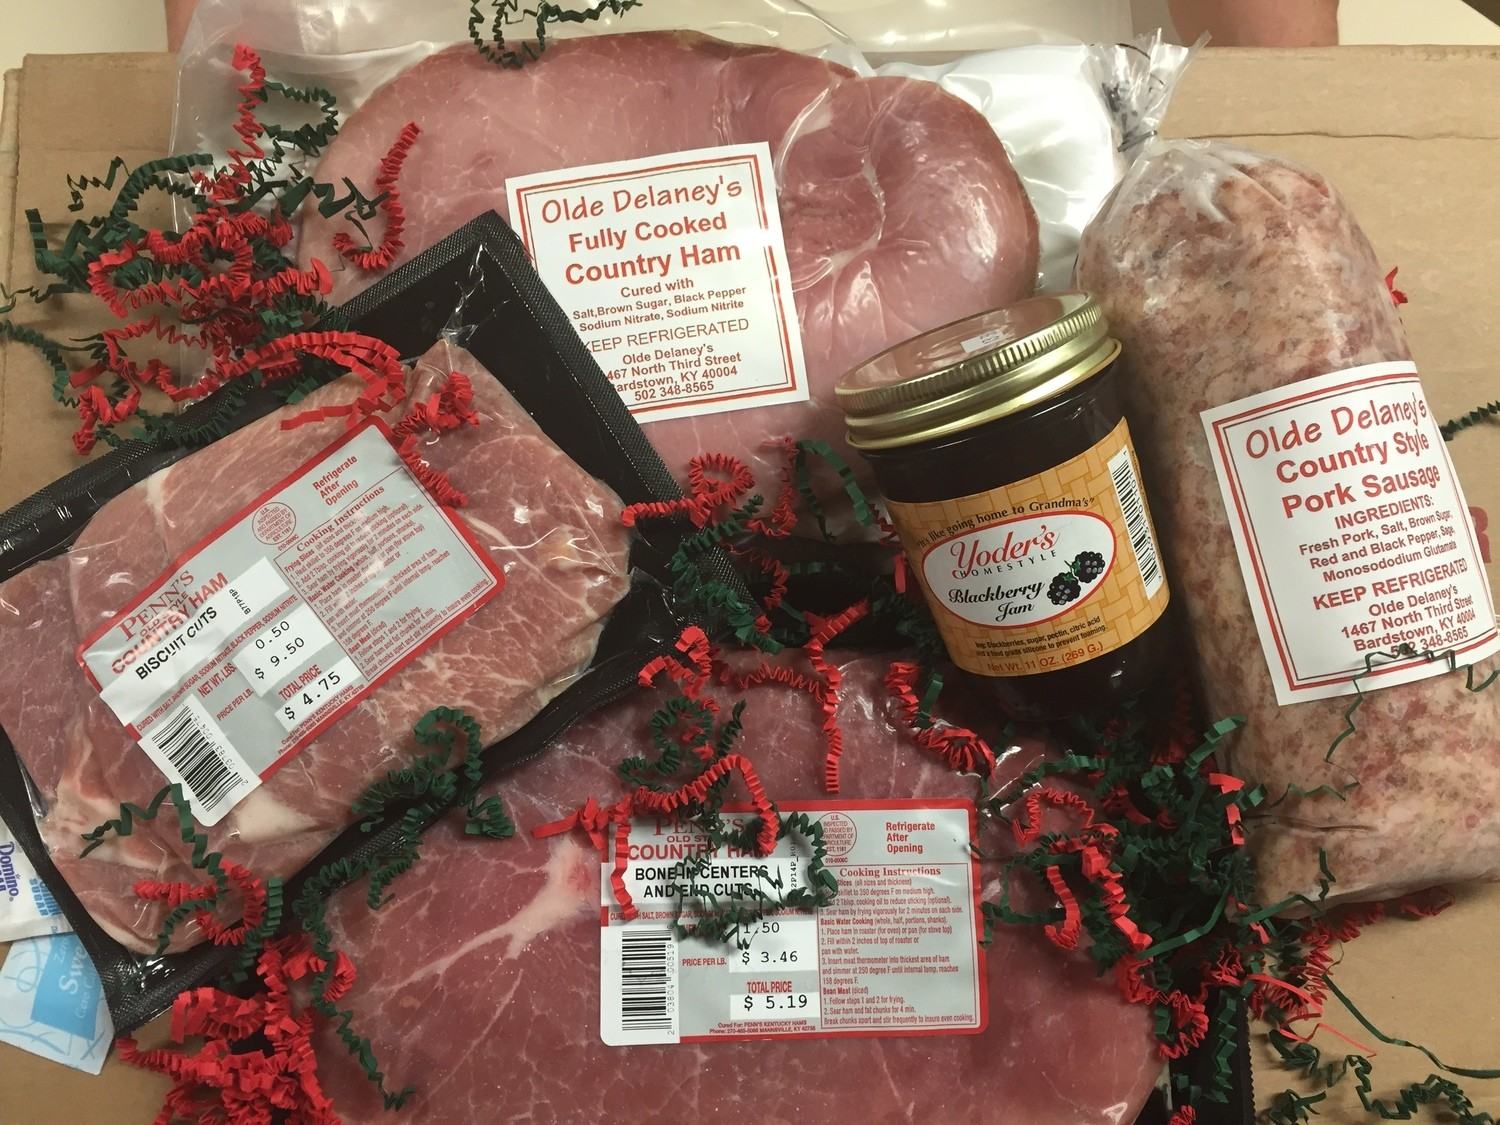 """Gift Box 1 """"Breakfast Gift Pack"""" ( 1 1/2 lbs frying Ham, 1/2lb Biscuit Cut Frying Ham, 1 1/2lbs Country Sausage, 1/lb Fully cooked Country Ham, 1 Jar Blackberry Jam)"""